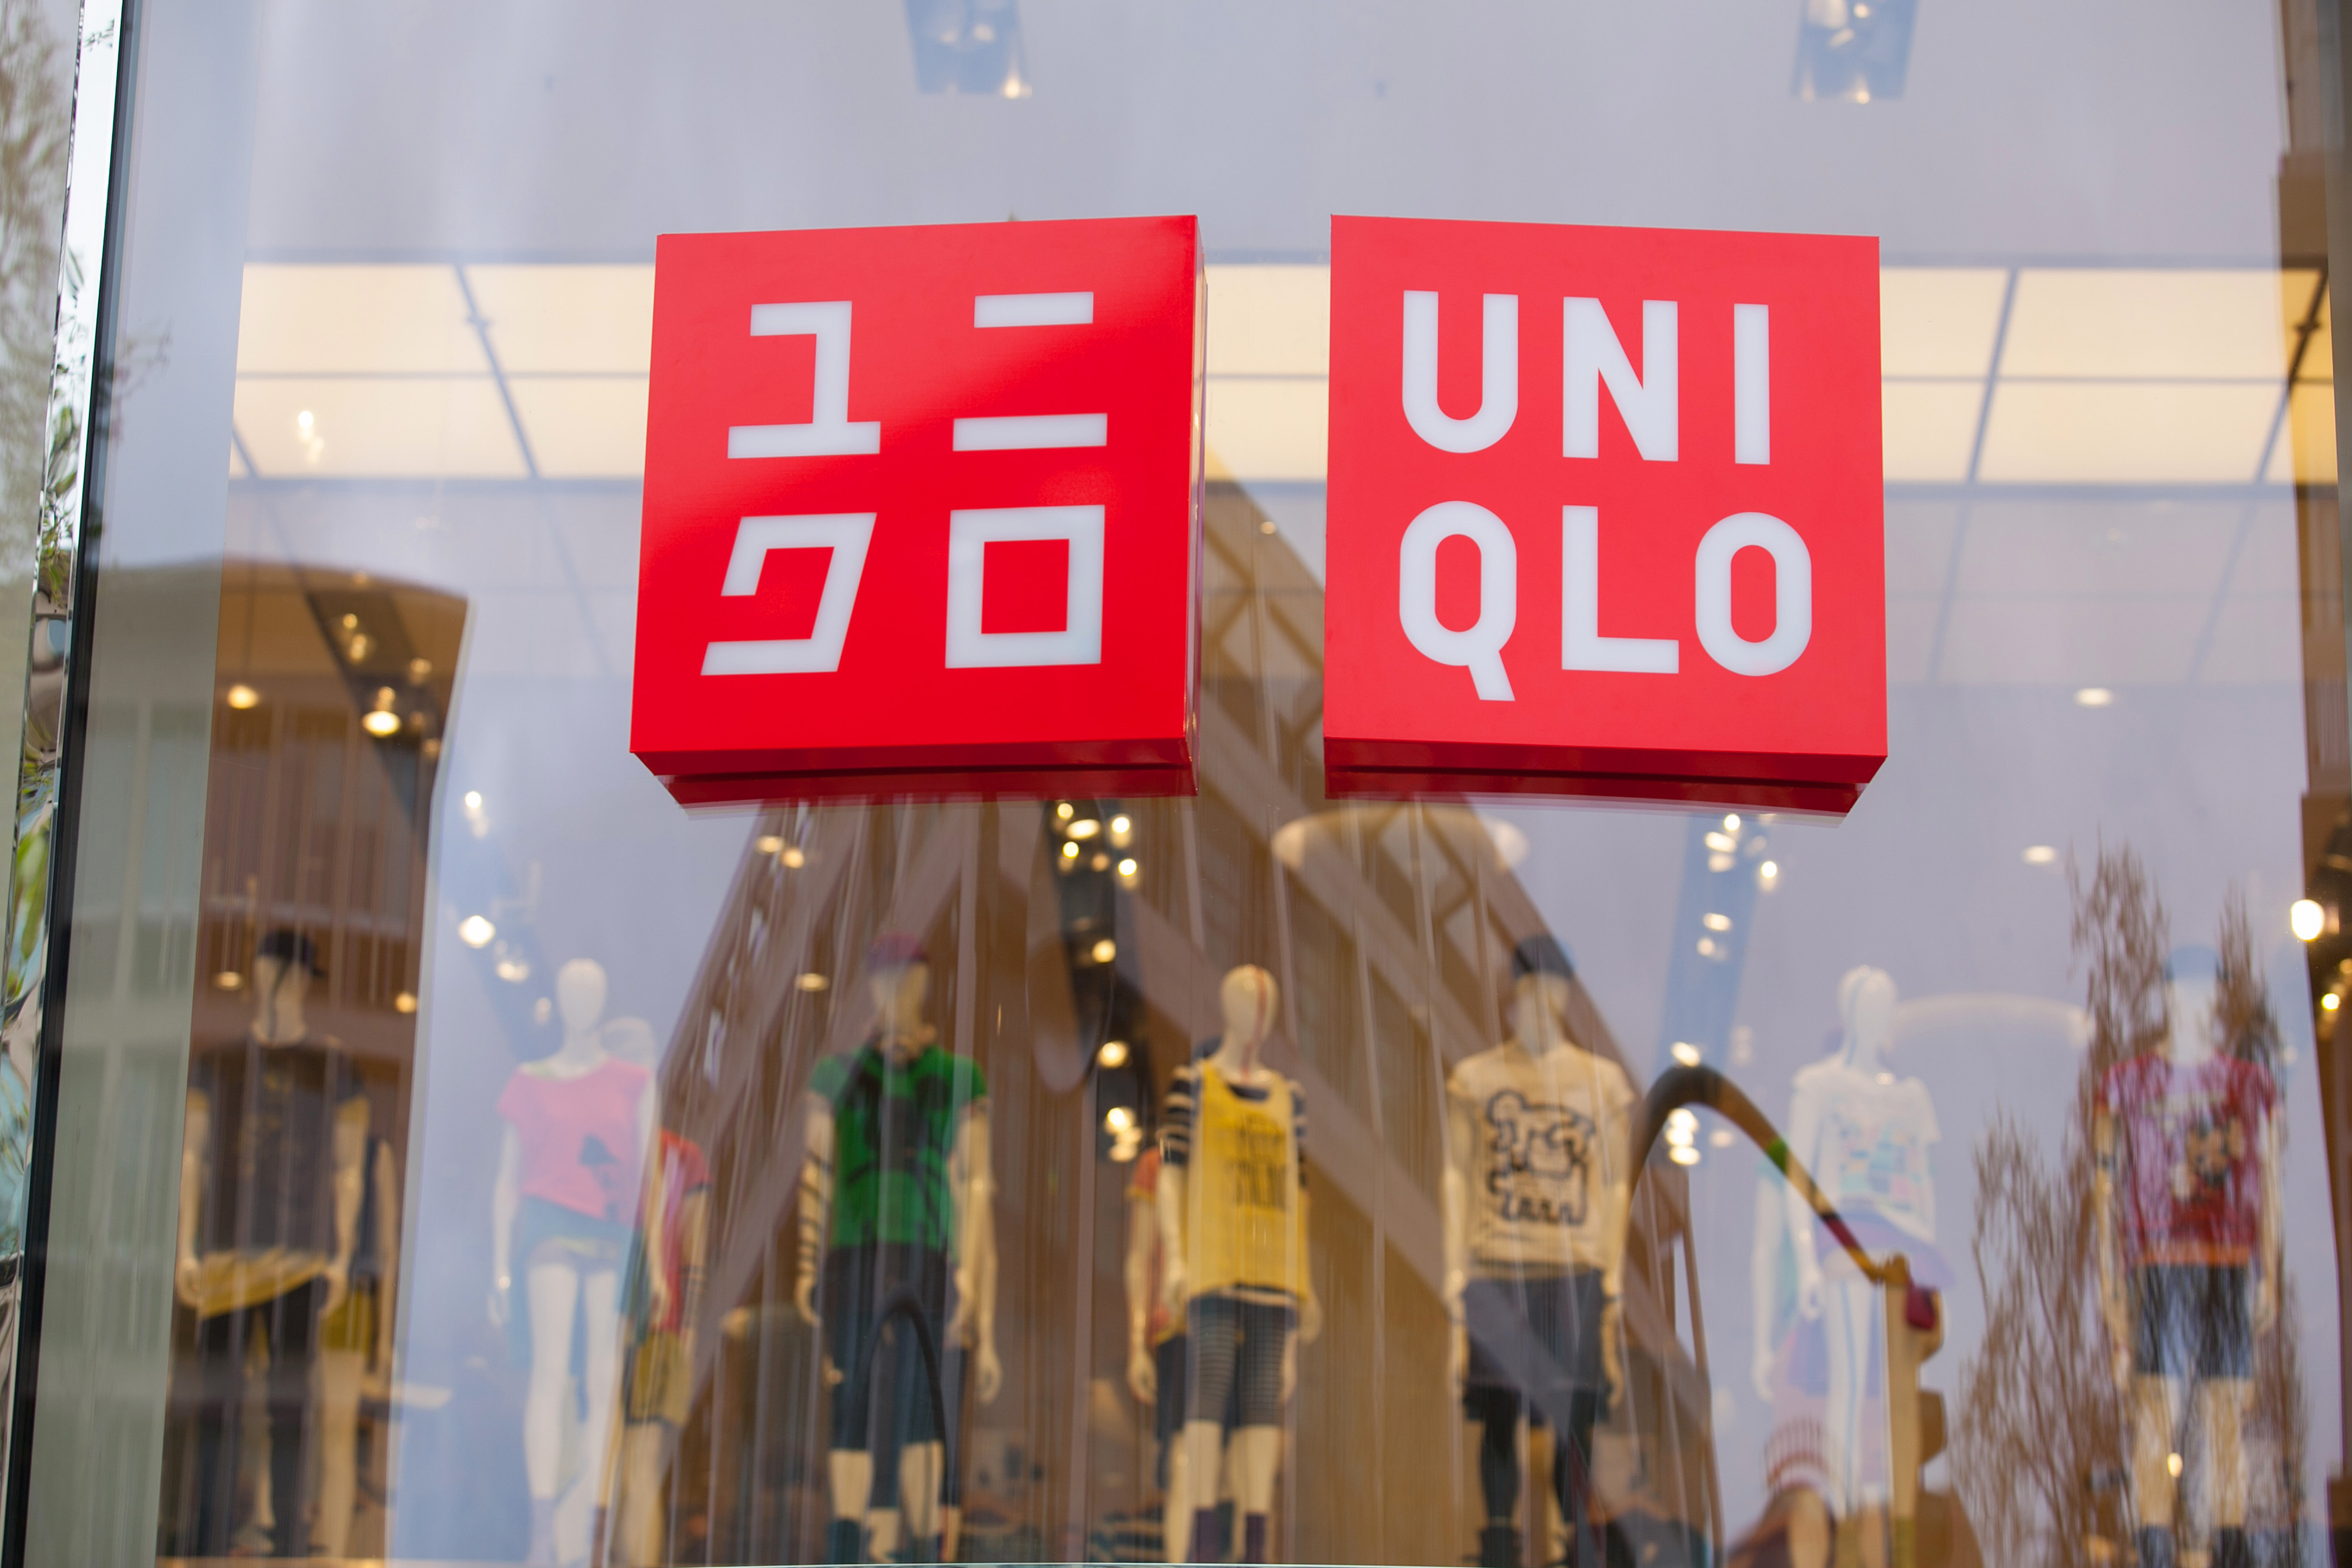 The logo of Uniqlo, the fashion clothing retailer operated by Fast Retailing Co., sits on display as the company opens their first German store in Berlin, Germany, on Friday, April 11, 2014. Fast Retailing, Asia's biggest clothing retailer, fell the most in 10 months in Tokyo trading after lowering its annual profit forecast, citing higher costs and weak demand. Photographer: Krisztian Bocsi/Bloomberg via Getty Images